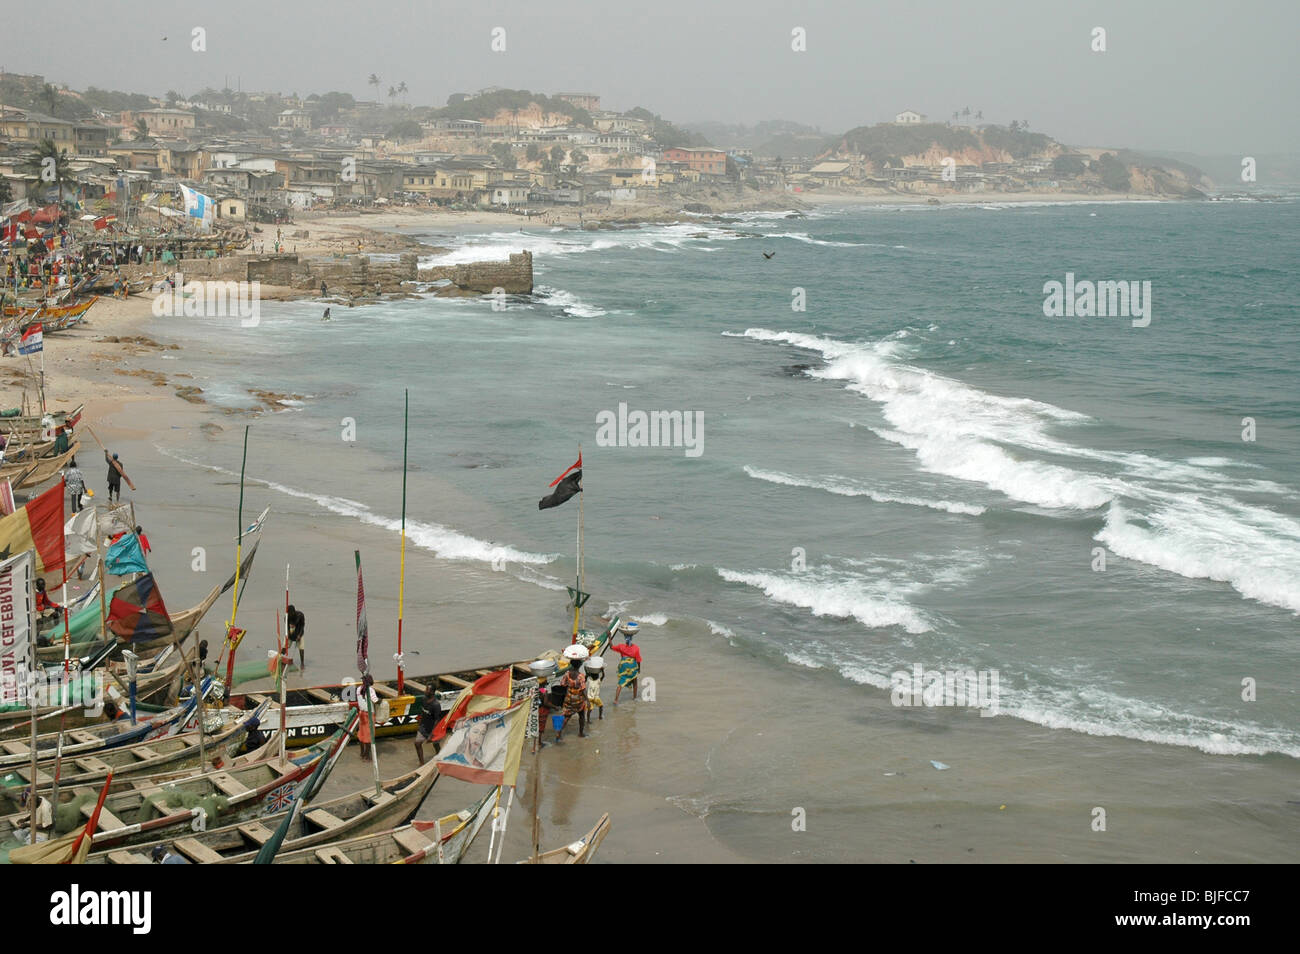 A fishing village along the Cape Coast. Ghana, West Africa, Africa - Stock Image